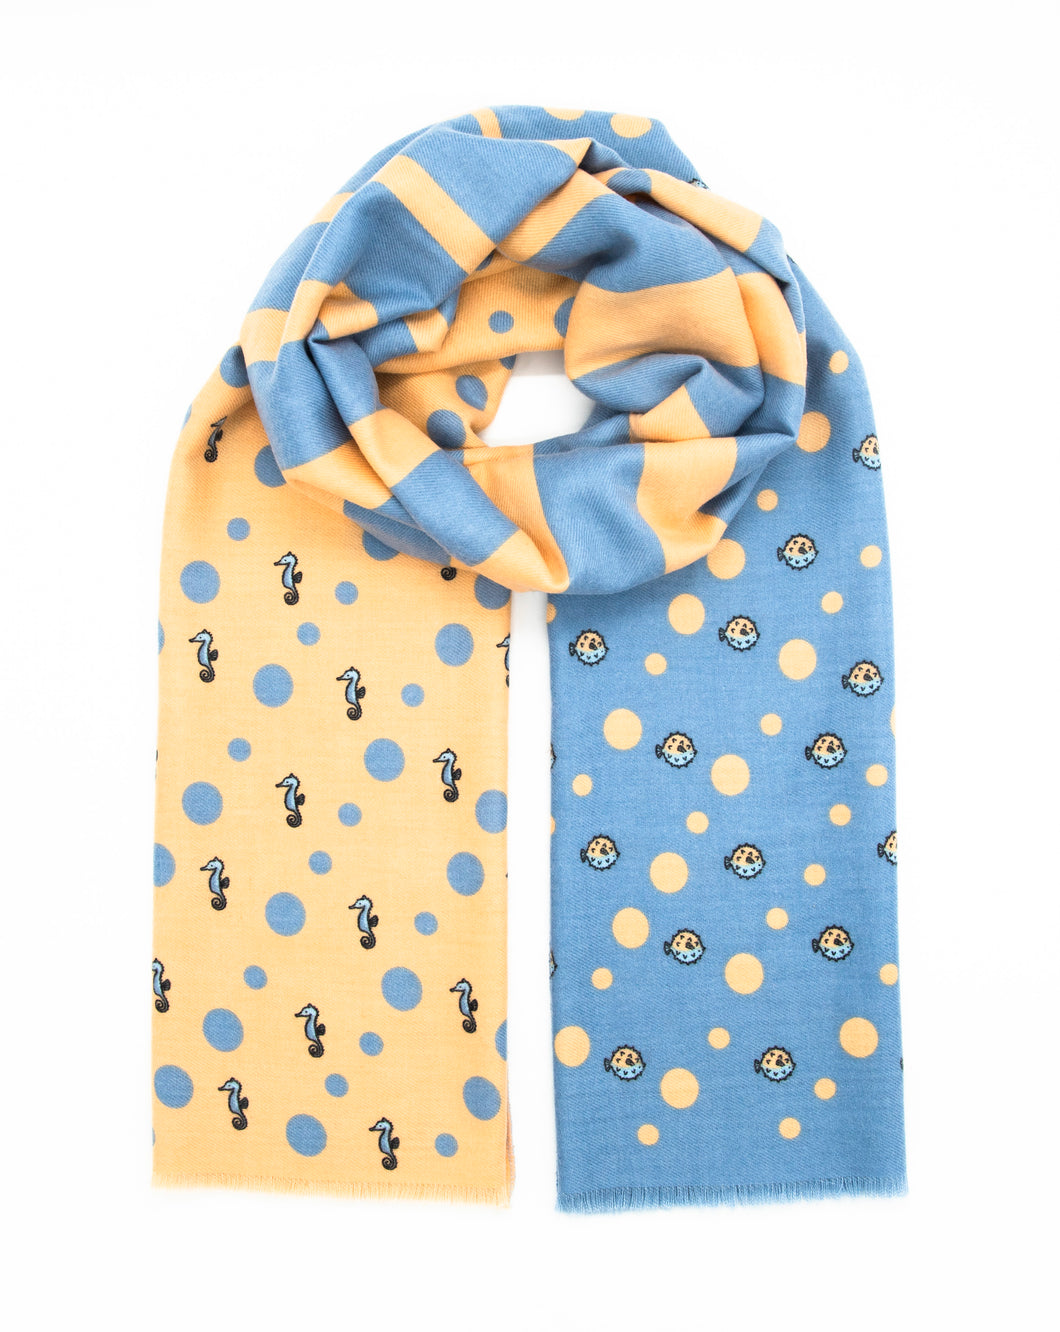 Beige and light blue scarf with marine pattern, sea horse and blow fish patterns. Scarves for women. Scarves for men.